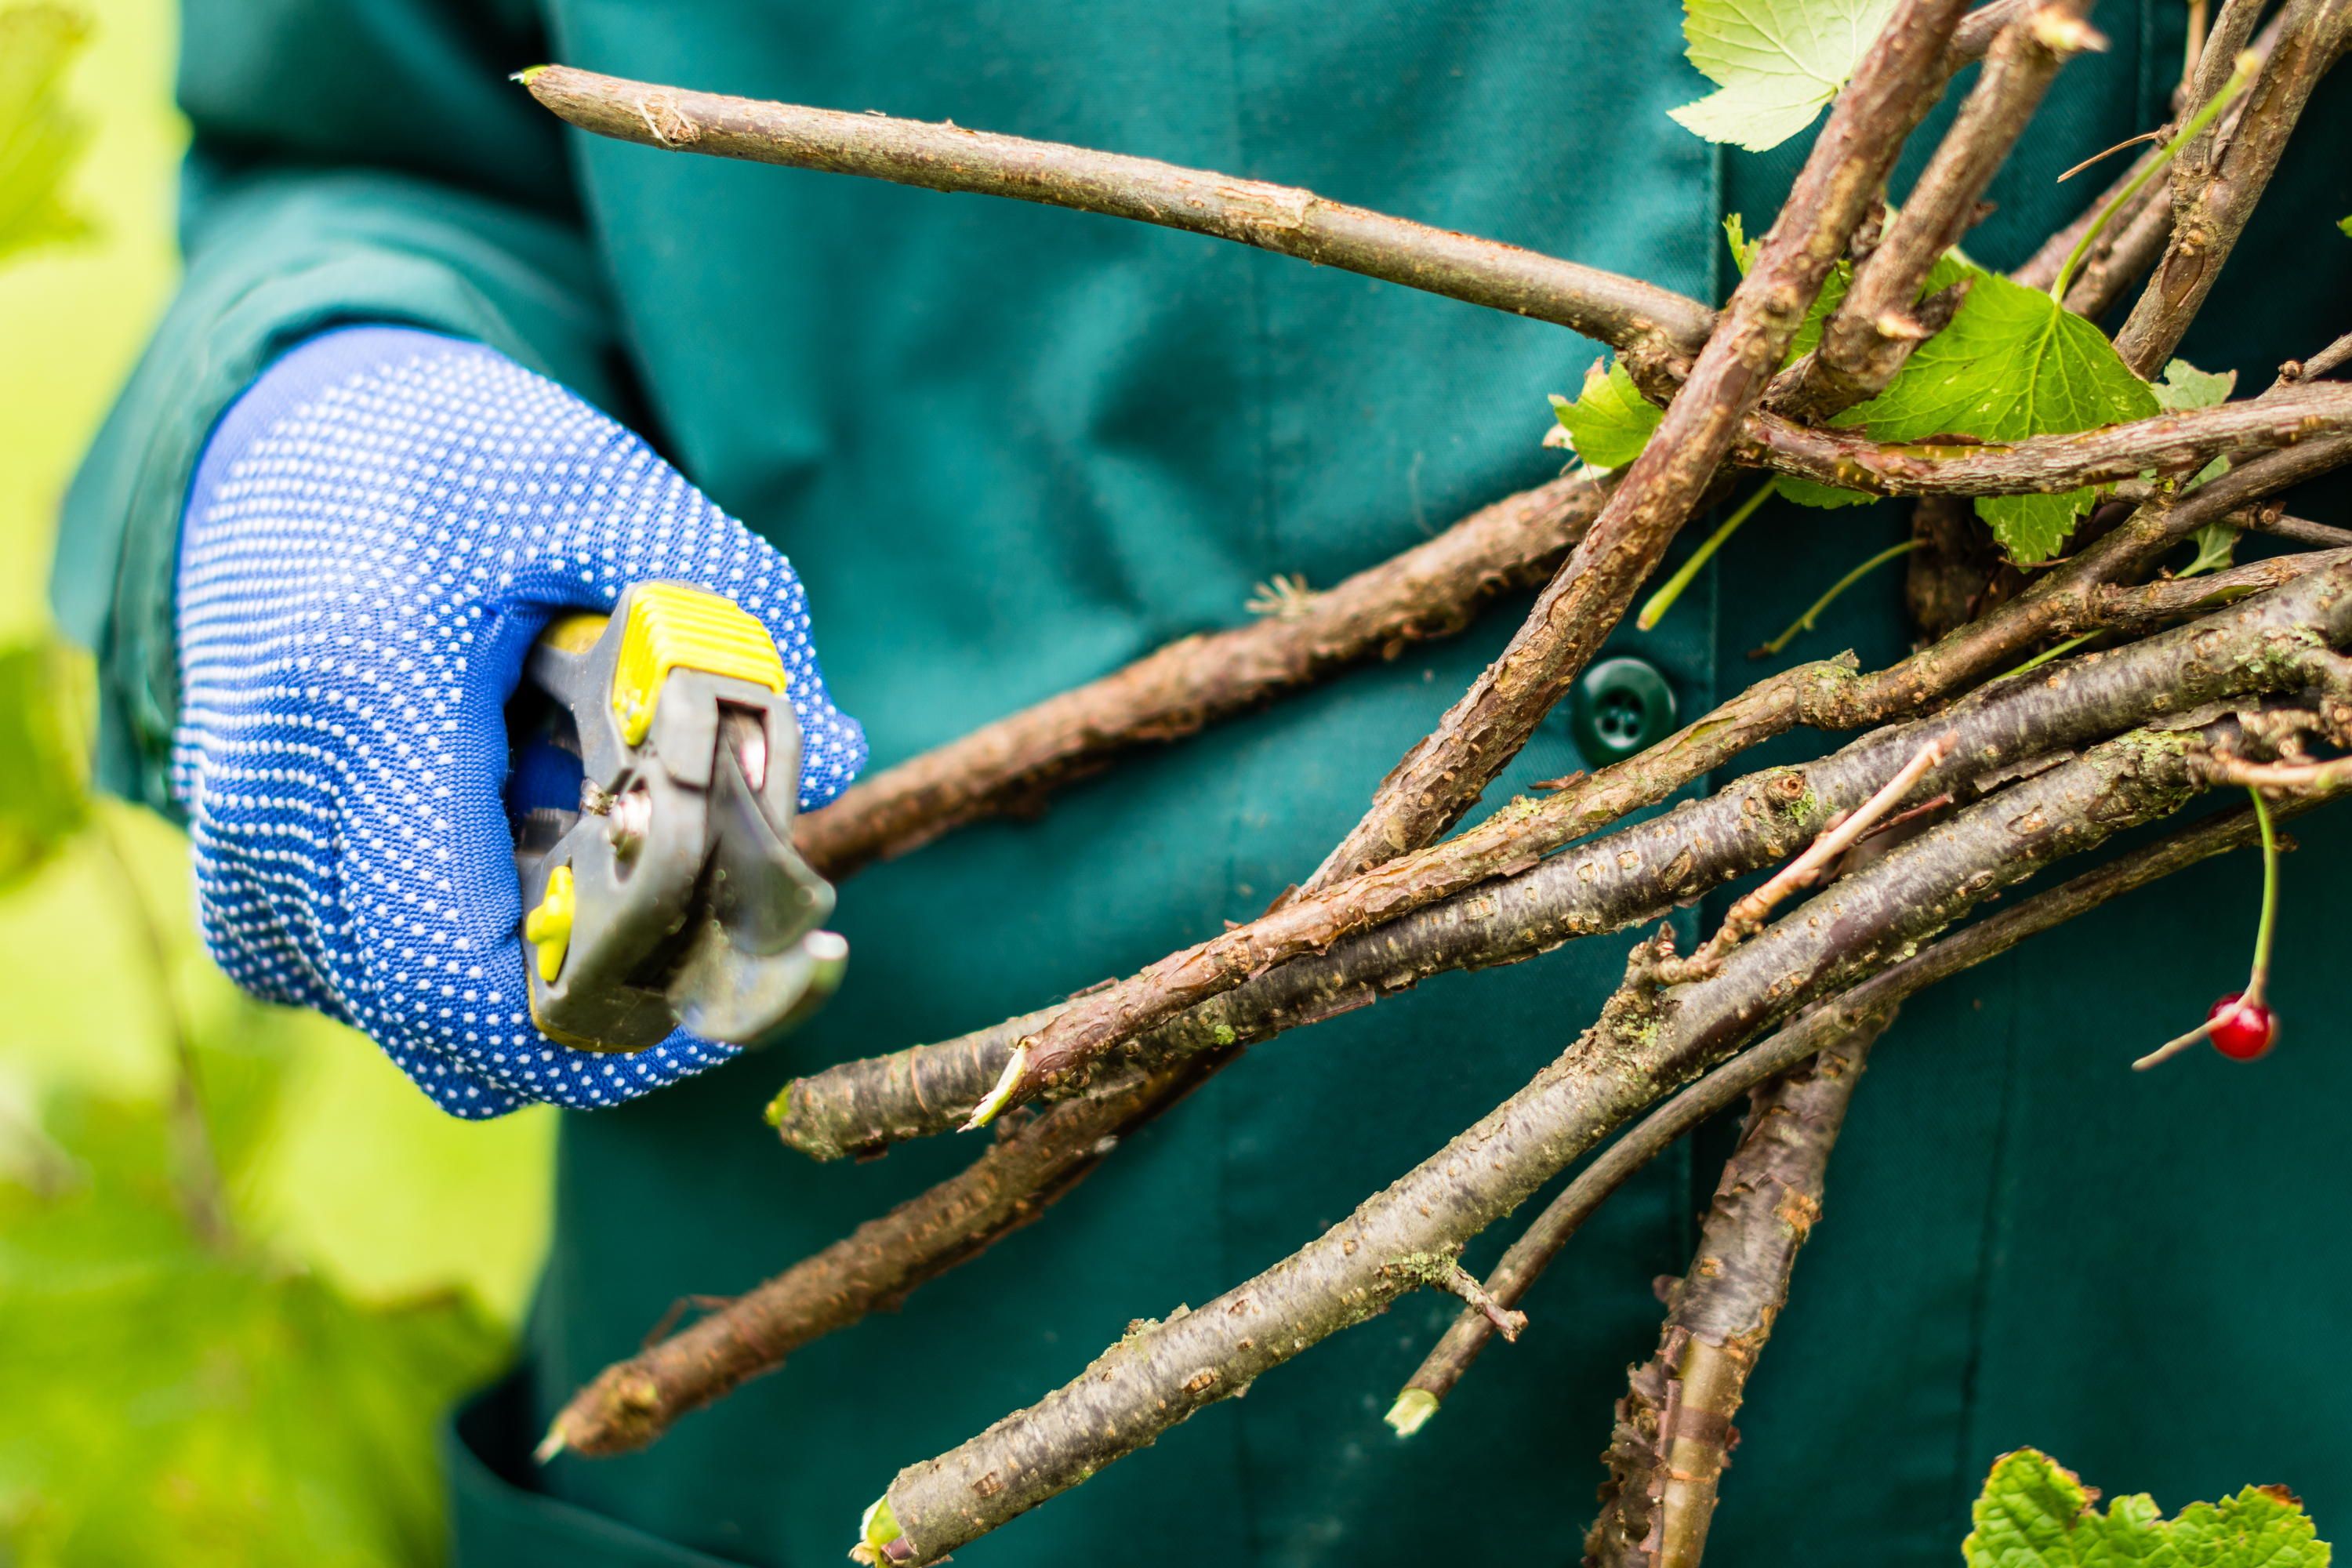 If you want to make Spring time a lot easier on yourself, make sure you do your fall pruning this year